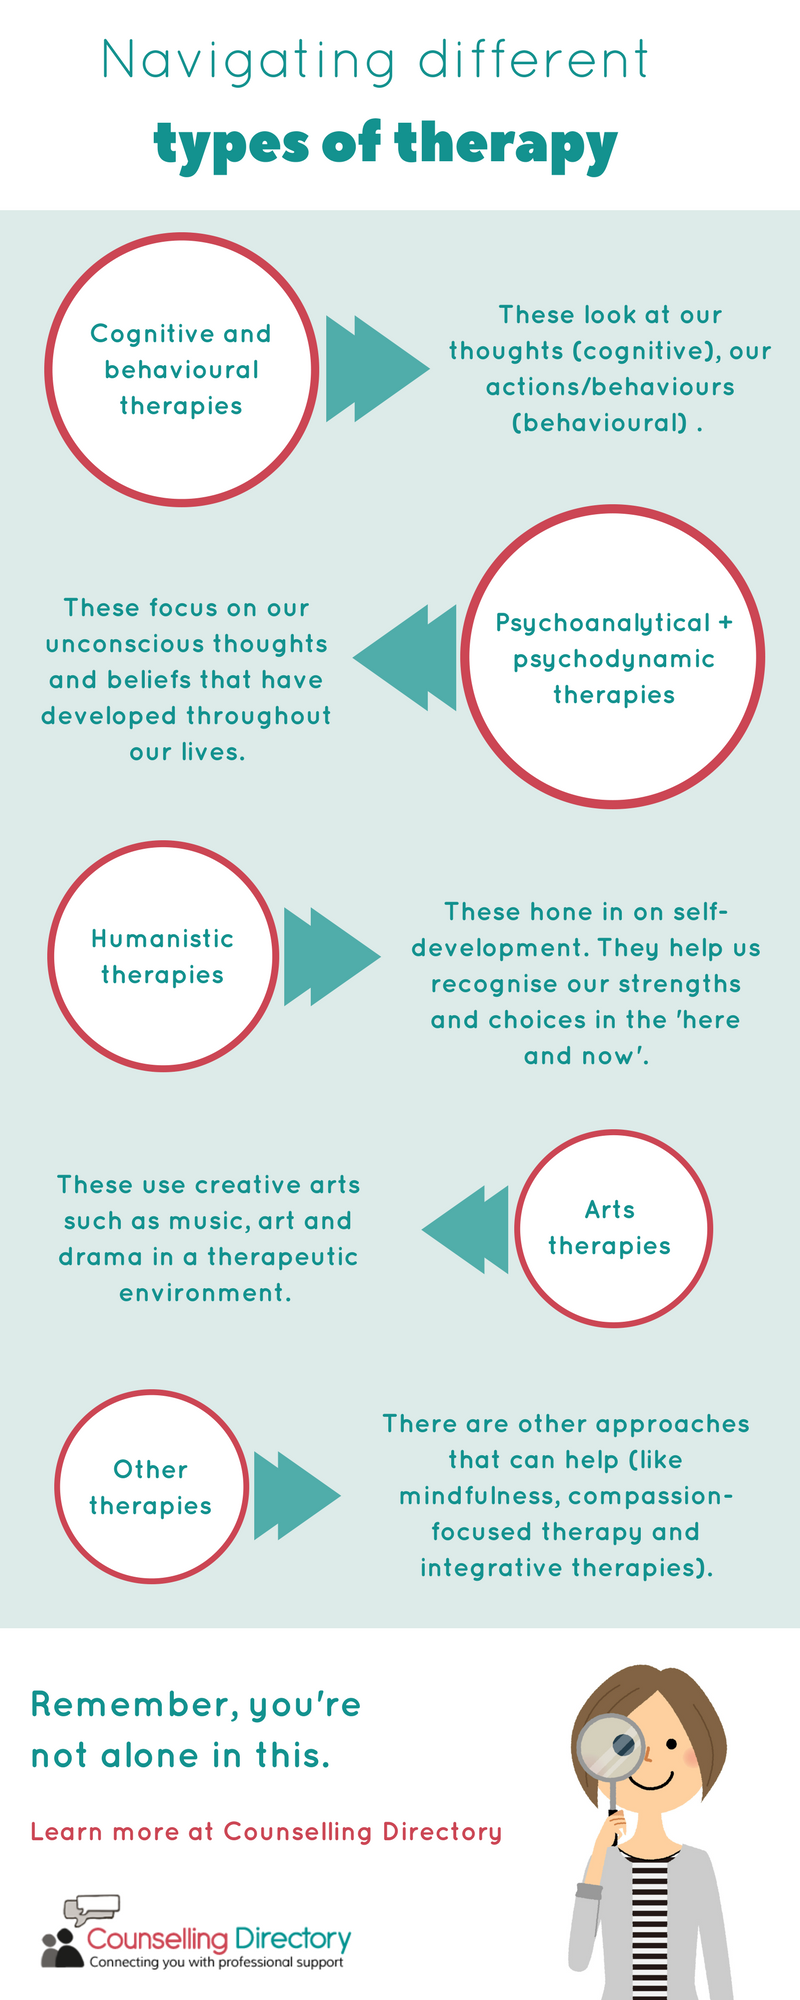 Navigating different types of therapy infographic